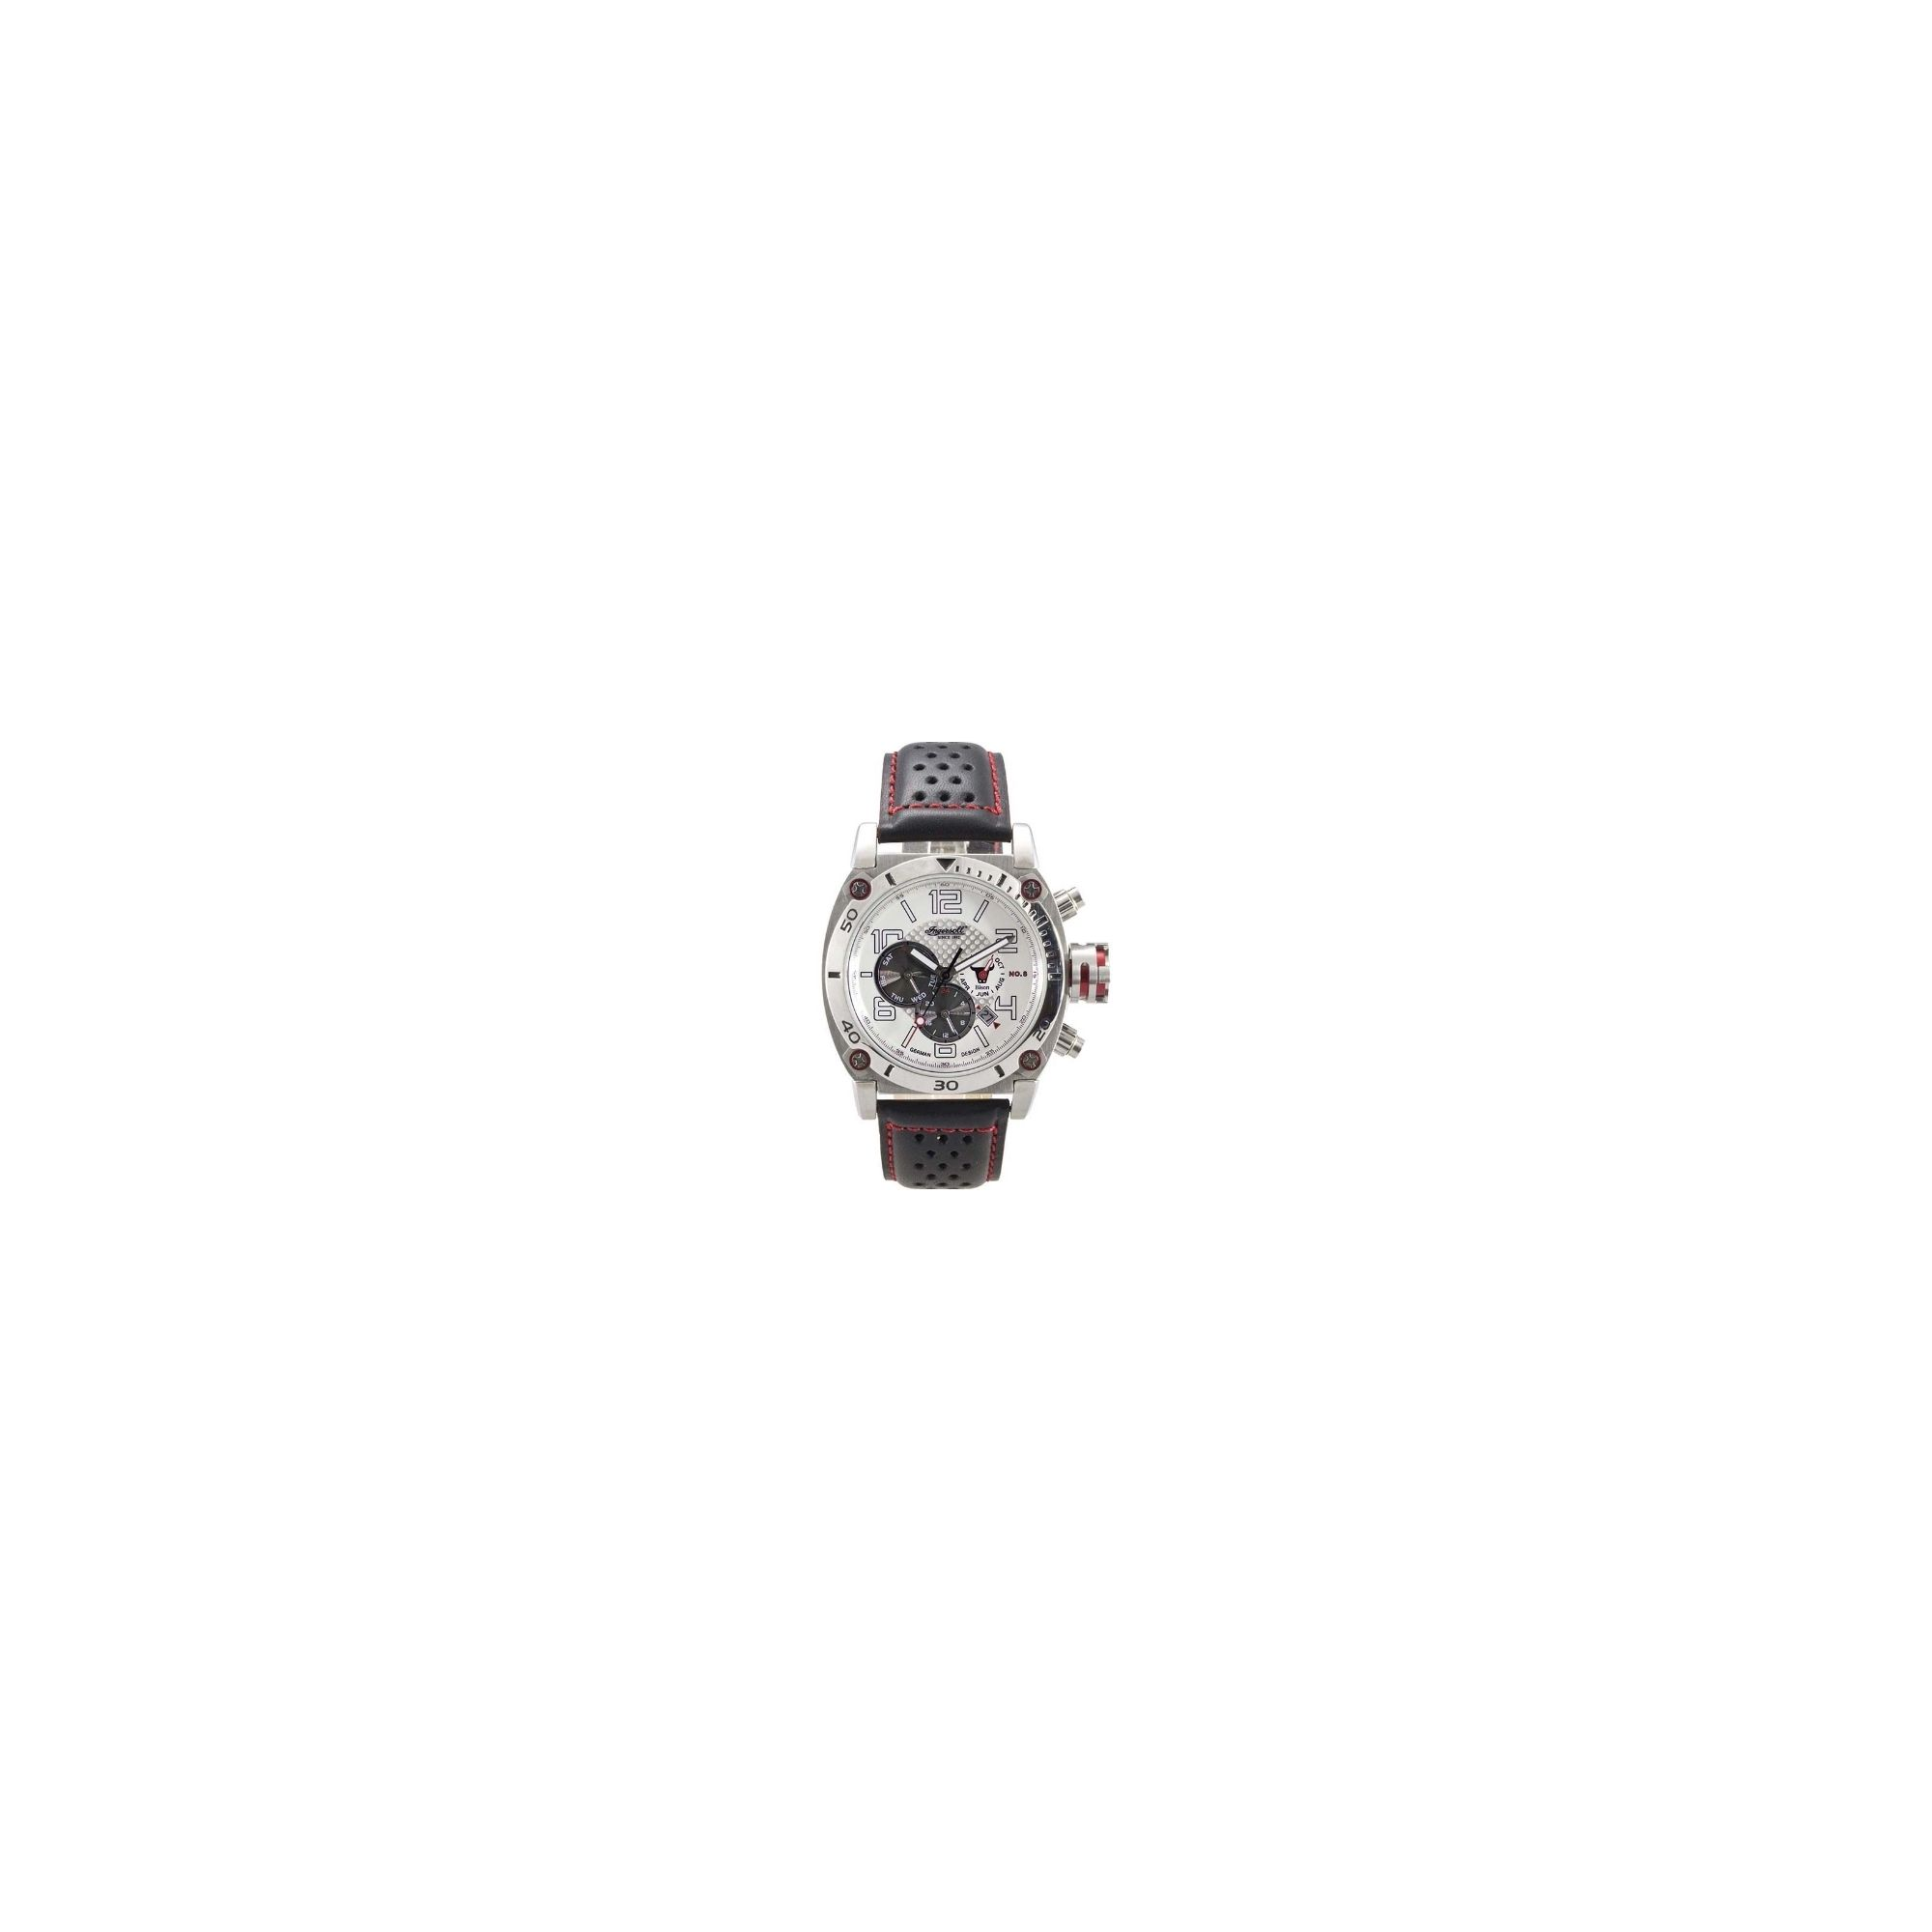 Ingersoll Bison No 8 Strap Watch IN2806WH at Tesco Direct